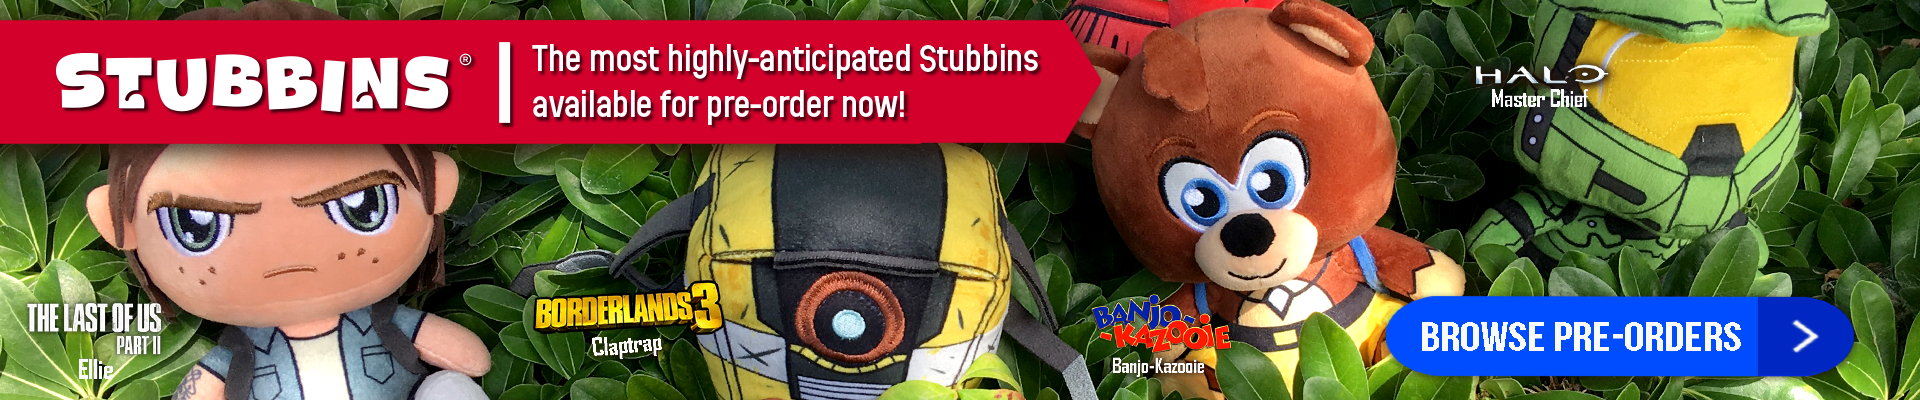 Stubbins, New, Pre-Order, Banjo, Banjo-Kazooie, Ellie, The Last of Us, Part II, Halo, Master Chief, Claptrap, Borderlands